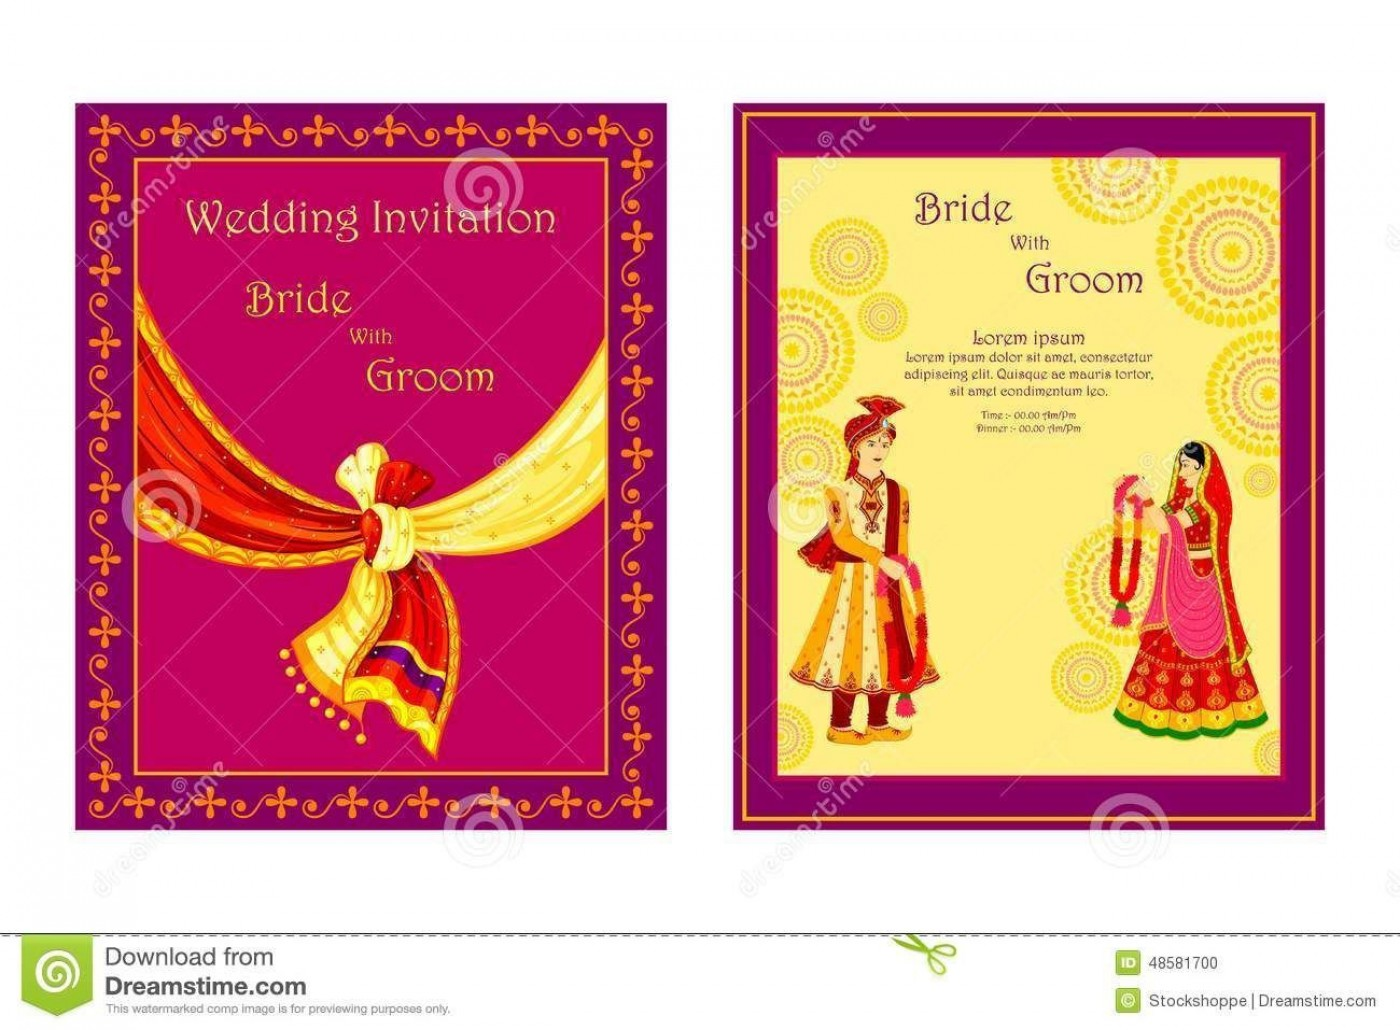 006 Magnificent Free Download Wedding Invitation Maker Software Idea  Video For Window 7 Card1400